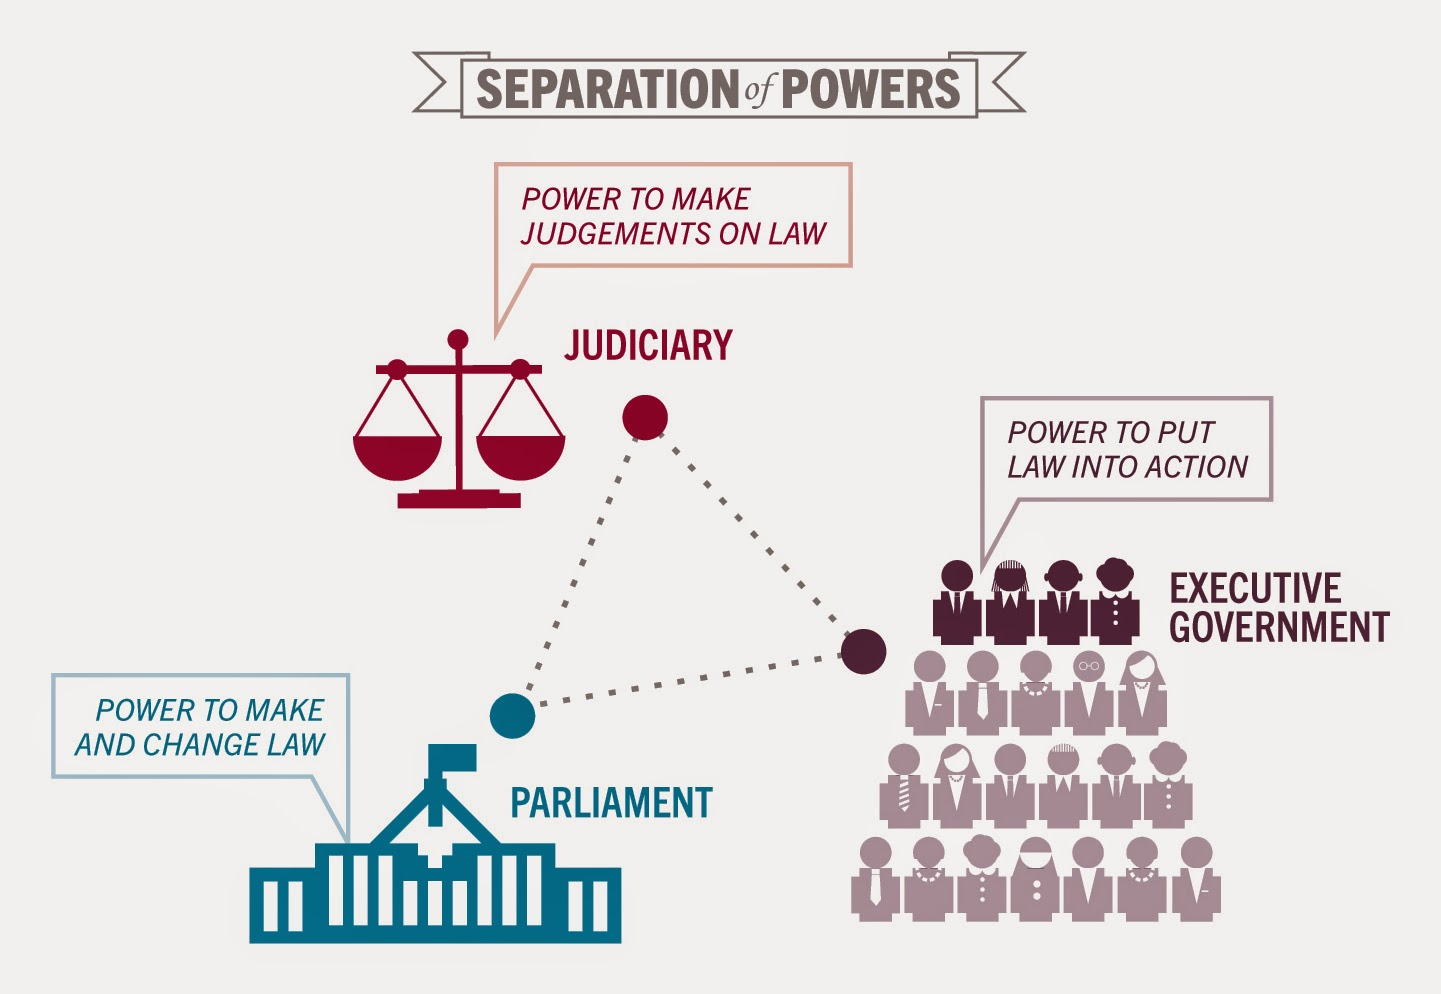 Us Government Checks And Balances Diagram How To Draw Electrical Wiring Diagrams Separation Of Powers In British Constitution The Law Study